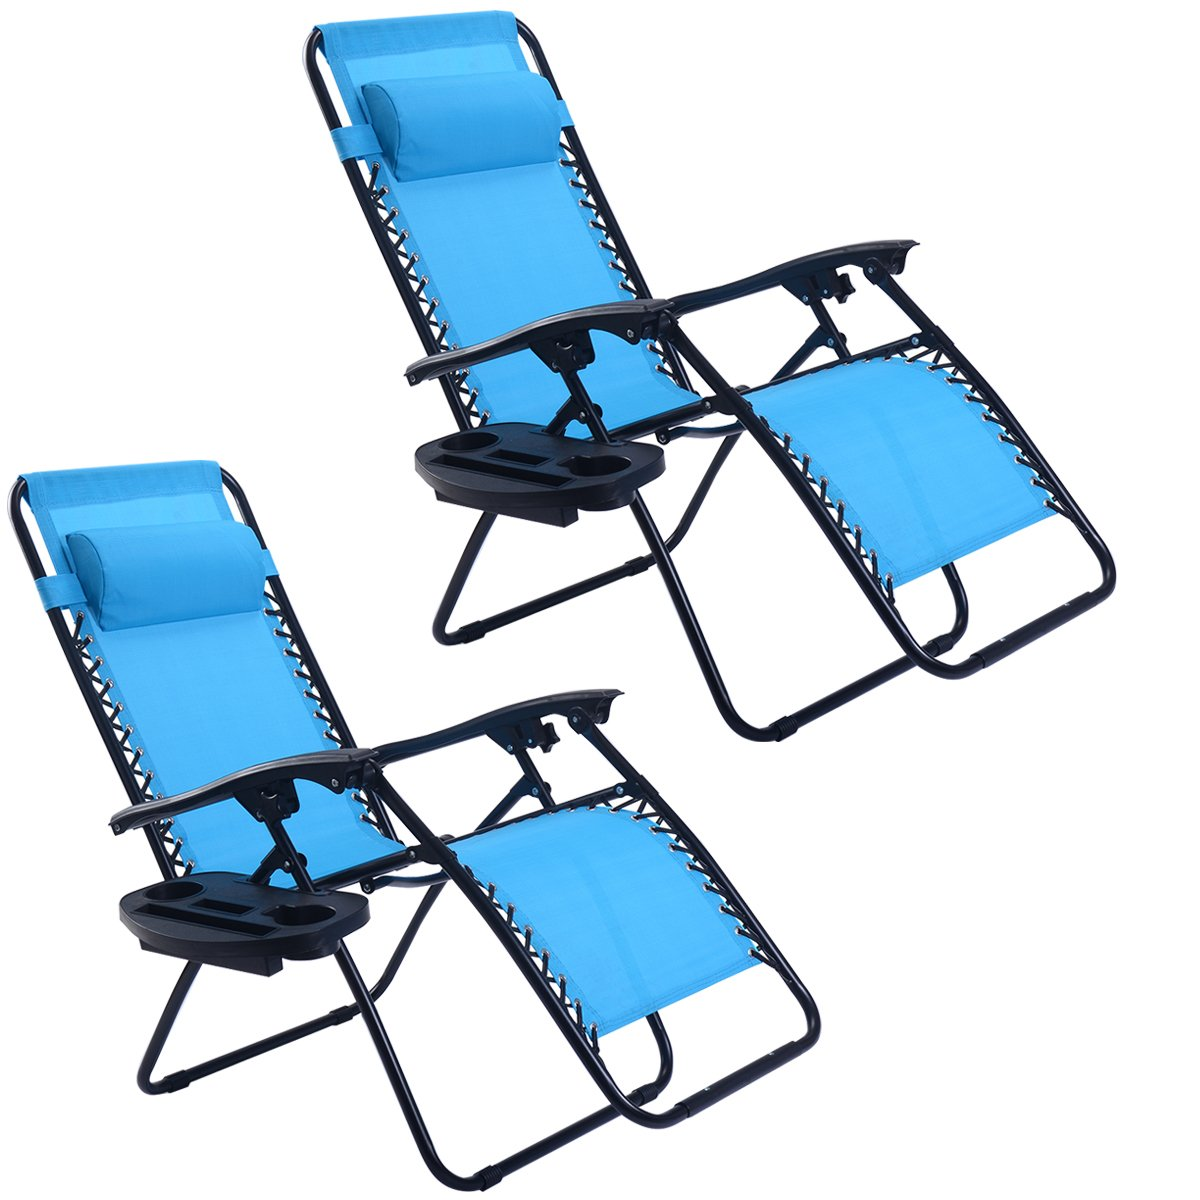 Goplus Zero Gravity Chairs, Lounge Patio, Folding Recliner, Outdoor Yard Beach with Cup Holder, Light Blue, 2 Piece